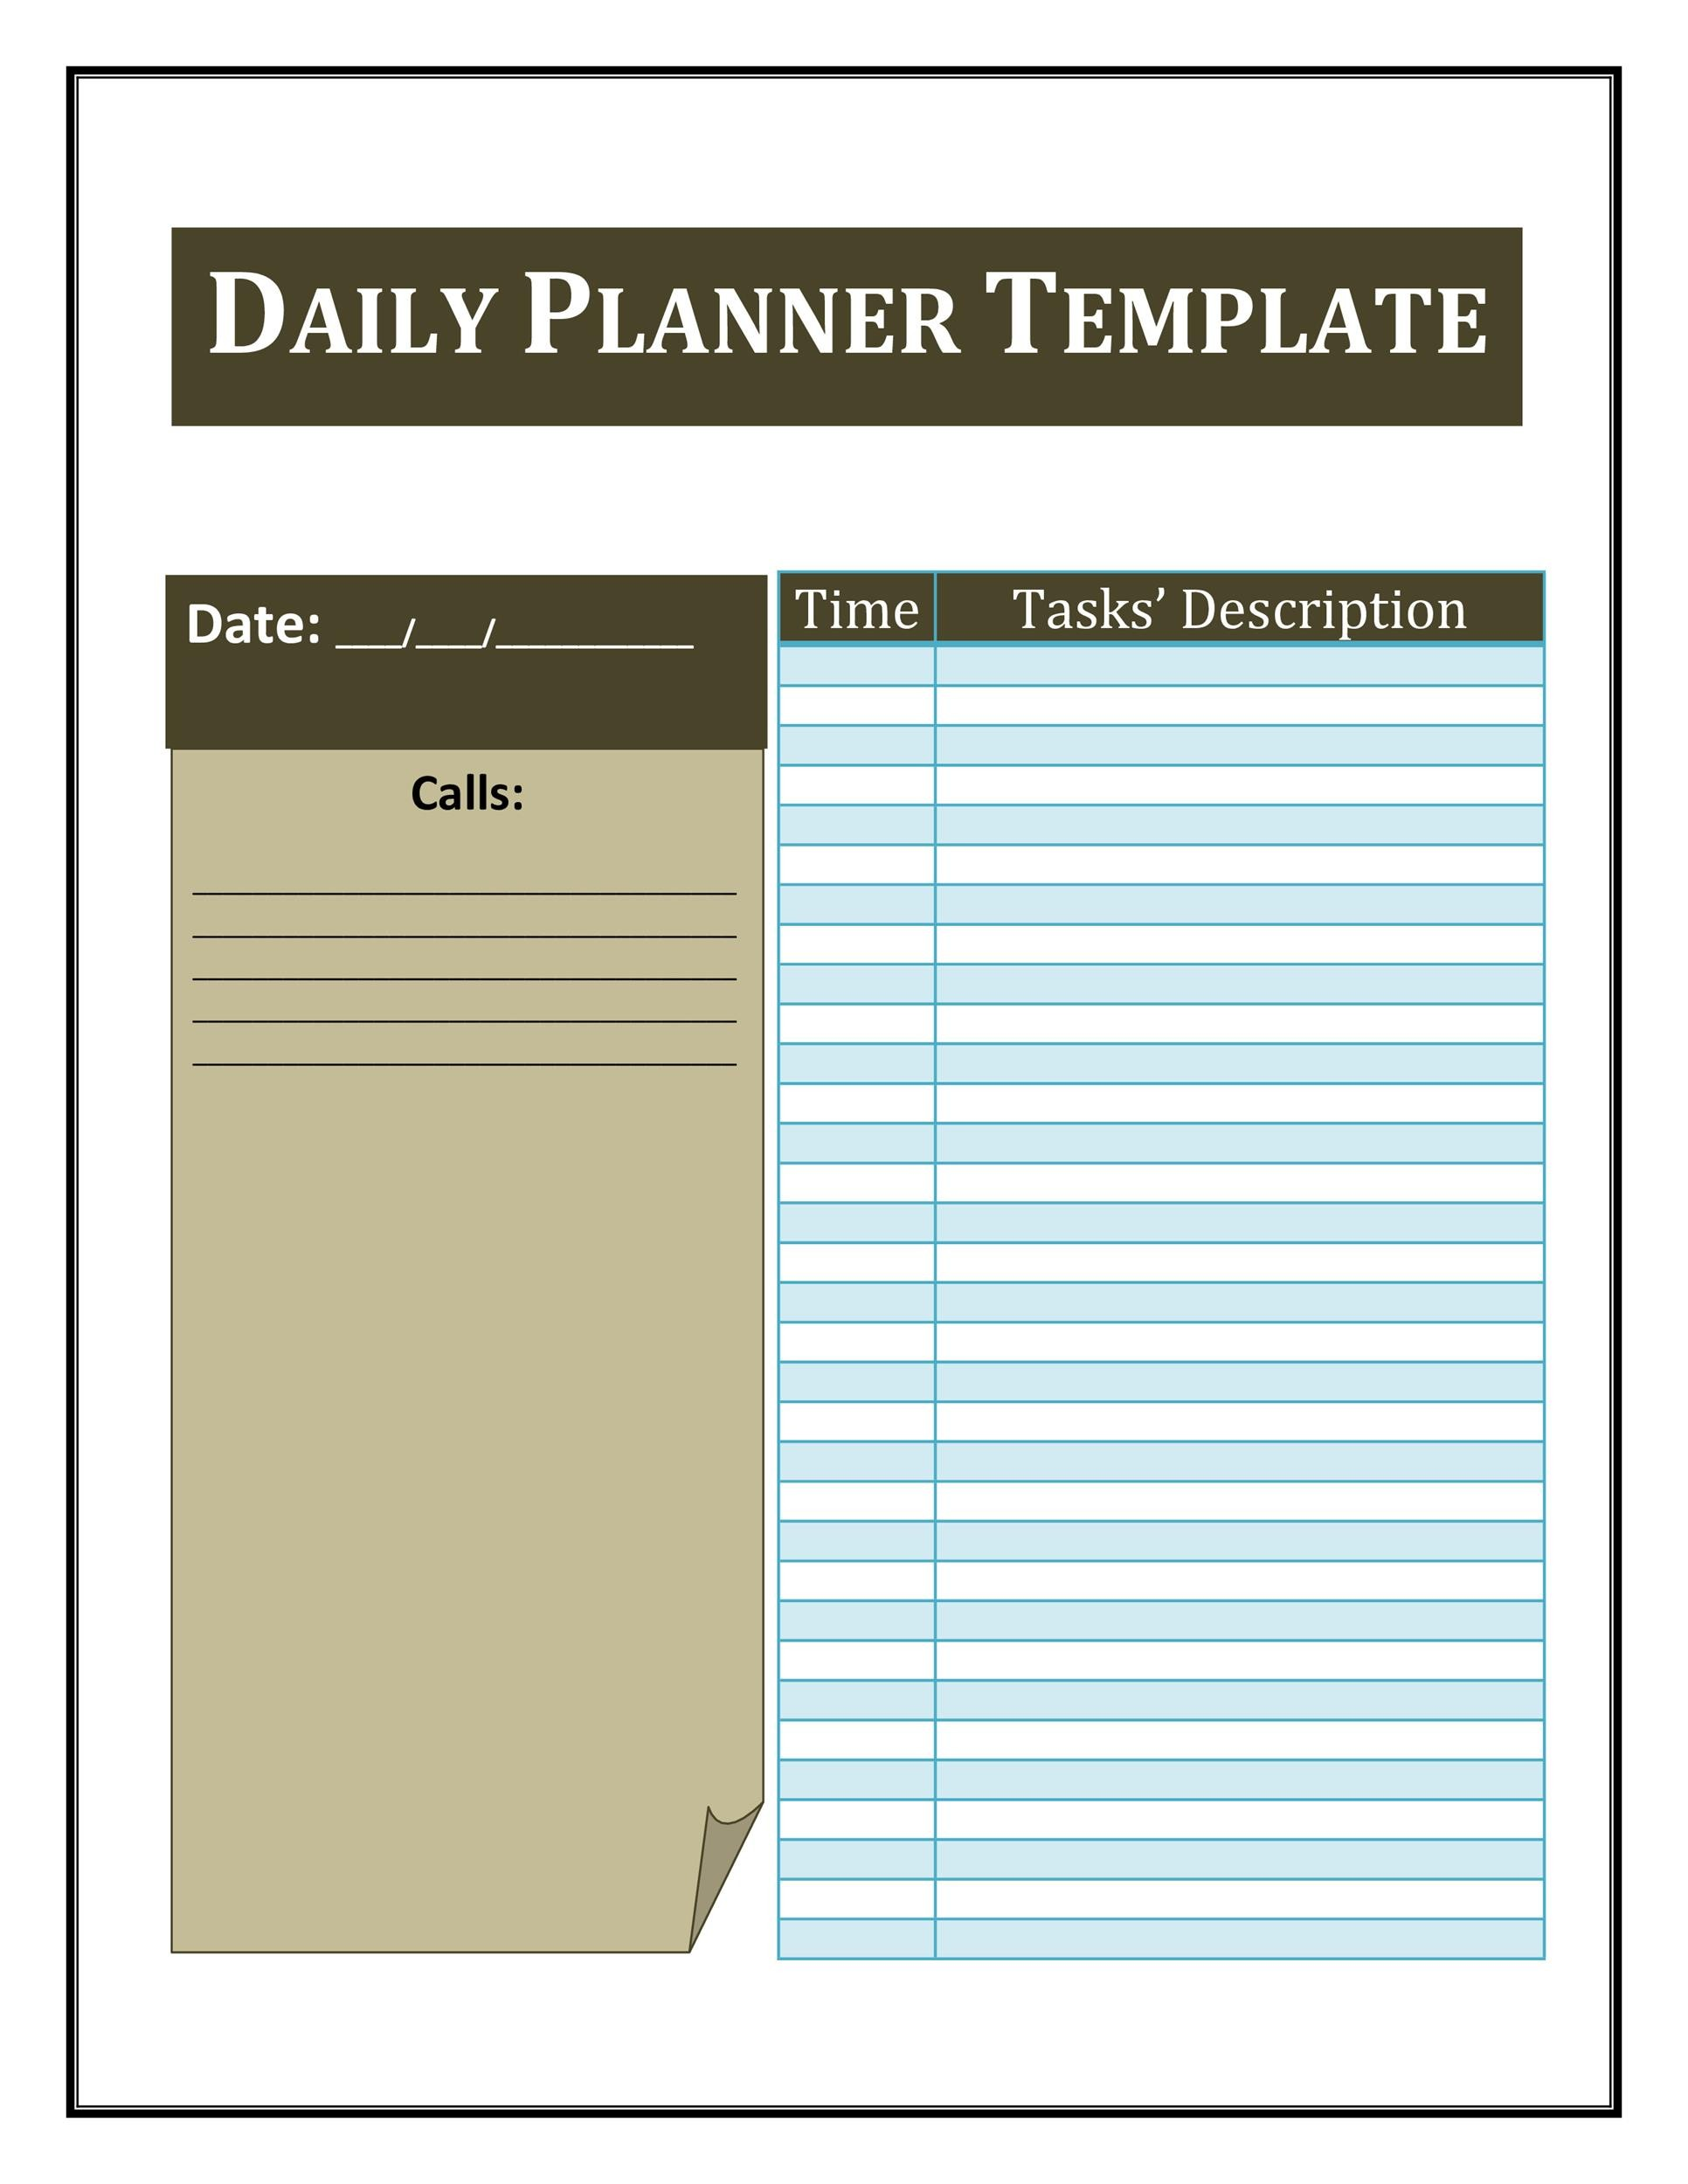 work diary template - Etame.mibawa.co